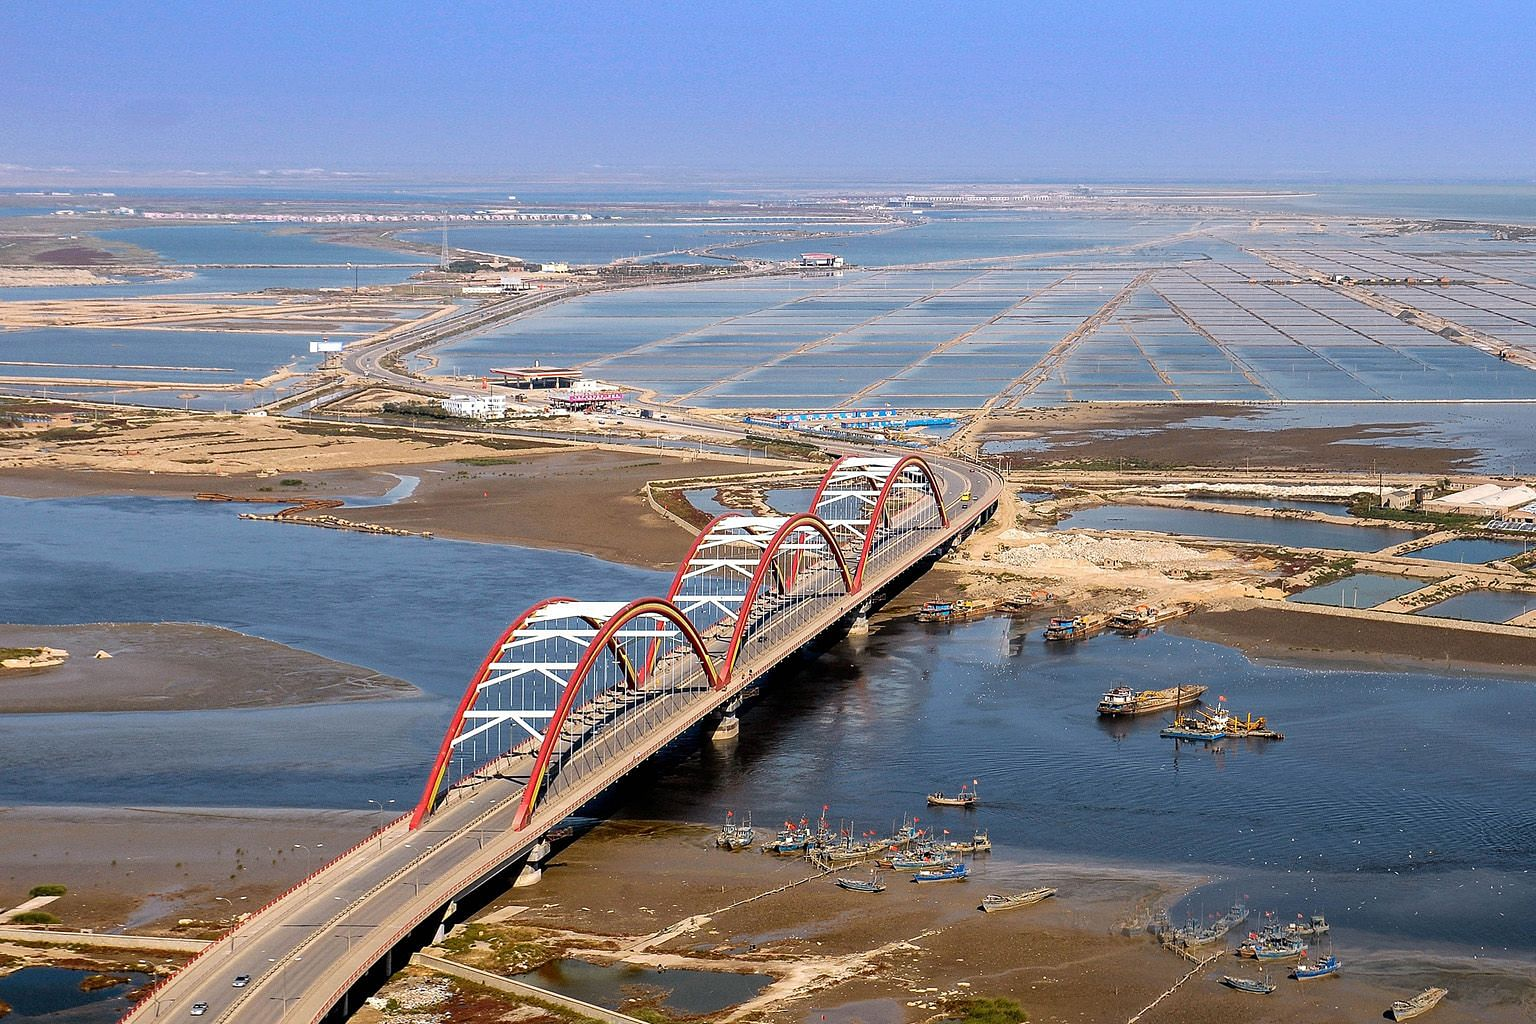 The eco-city last year, after the bilateral project turned the barren wasteland into a thriving township that emphasises a low-carbon, green lifestyle. The approach to Tianjin Eco-city from the Rainbow Bridge in the Tianjin Binhai New Area in 2008, b